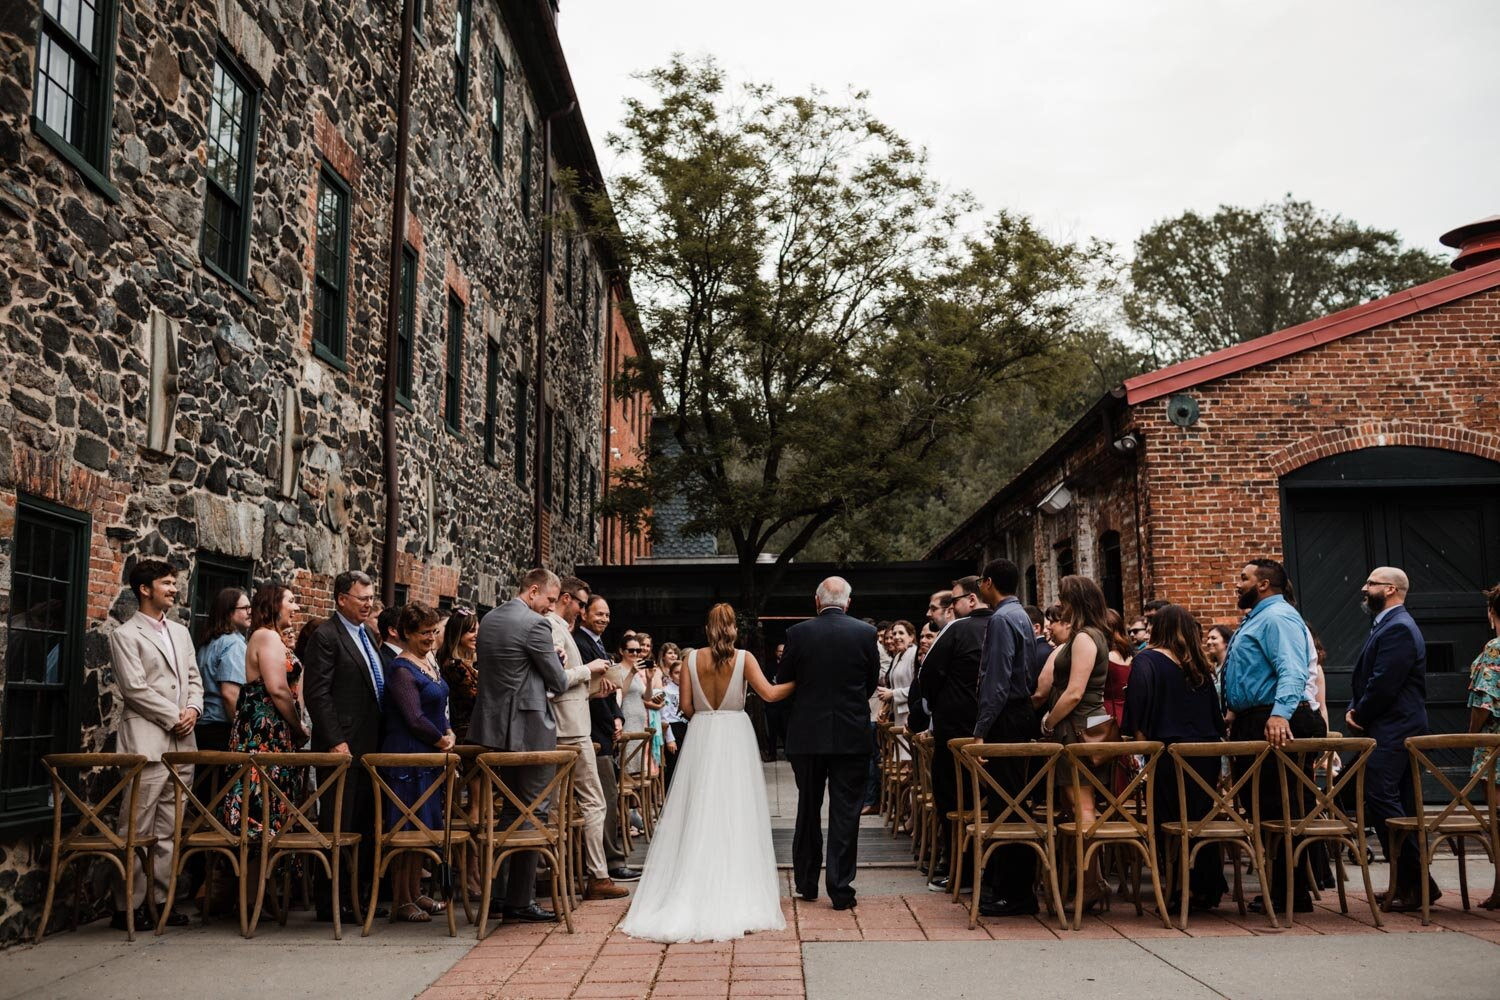 Mt Washington Mill Dye House industrial Baltimore wedding by Barbara O Photography-181.jpg